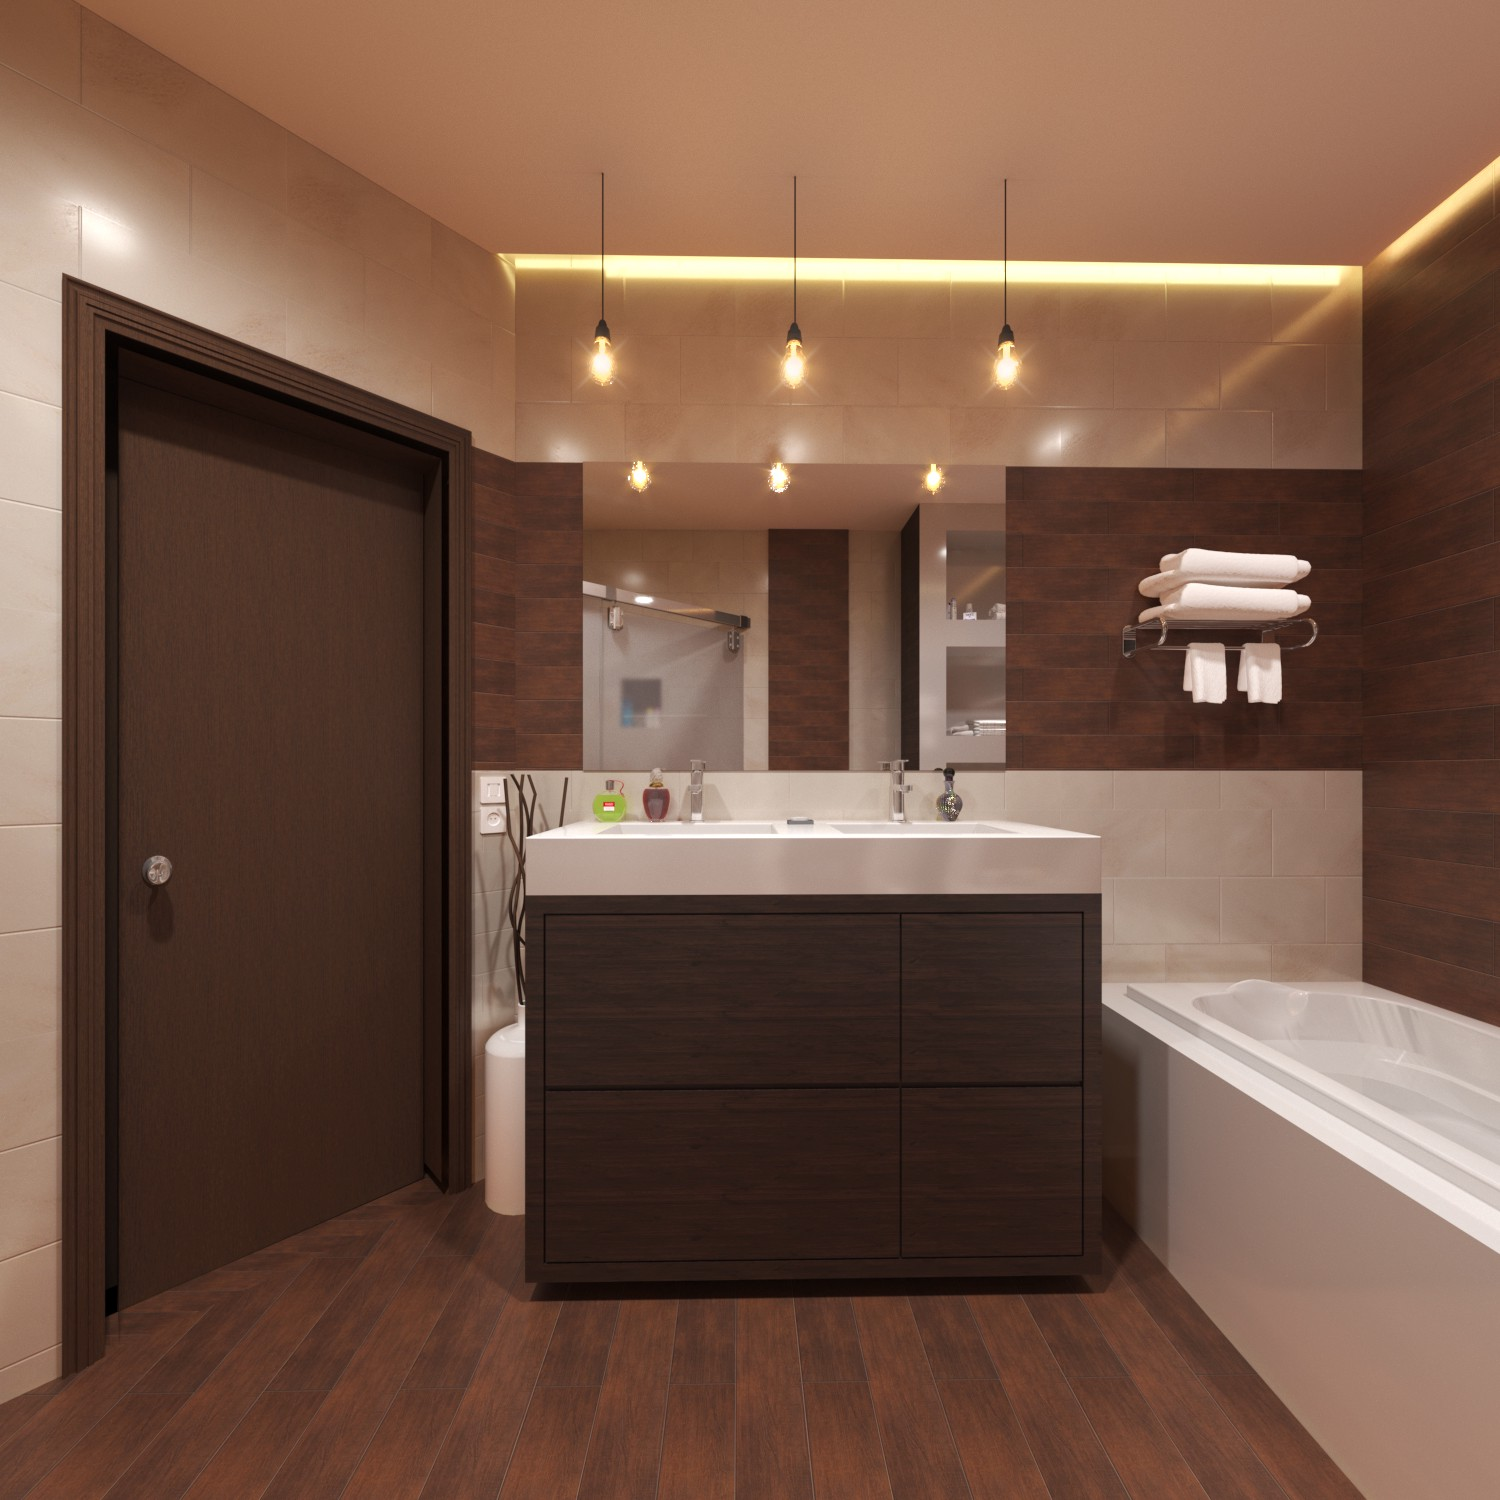 Architectural Rendering Services Los Angeles For Bathroom Project